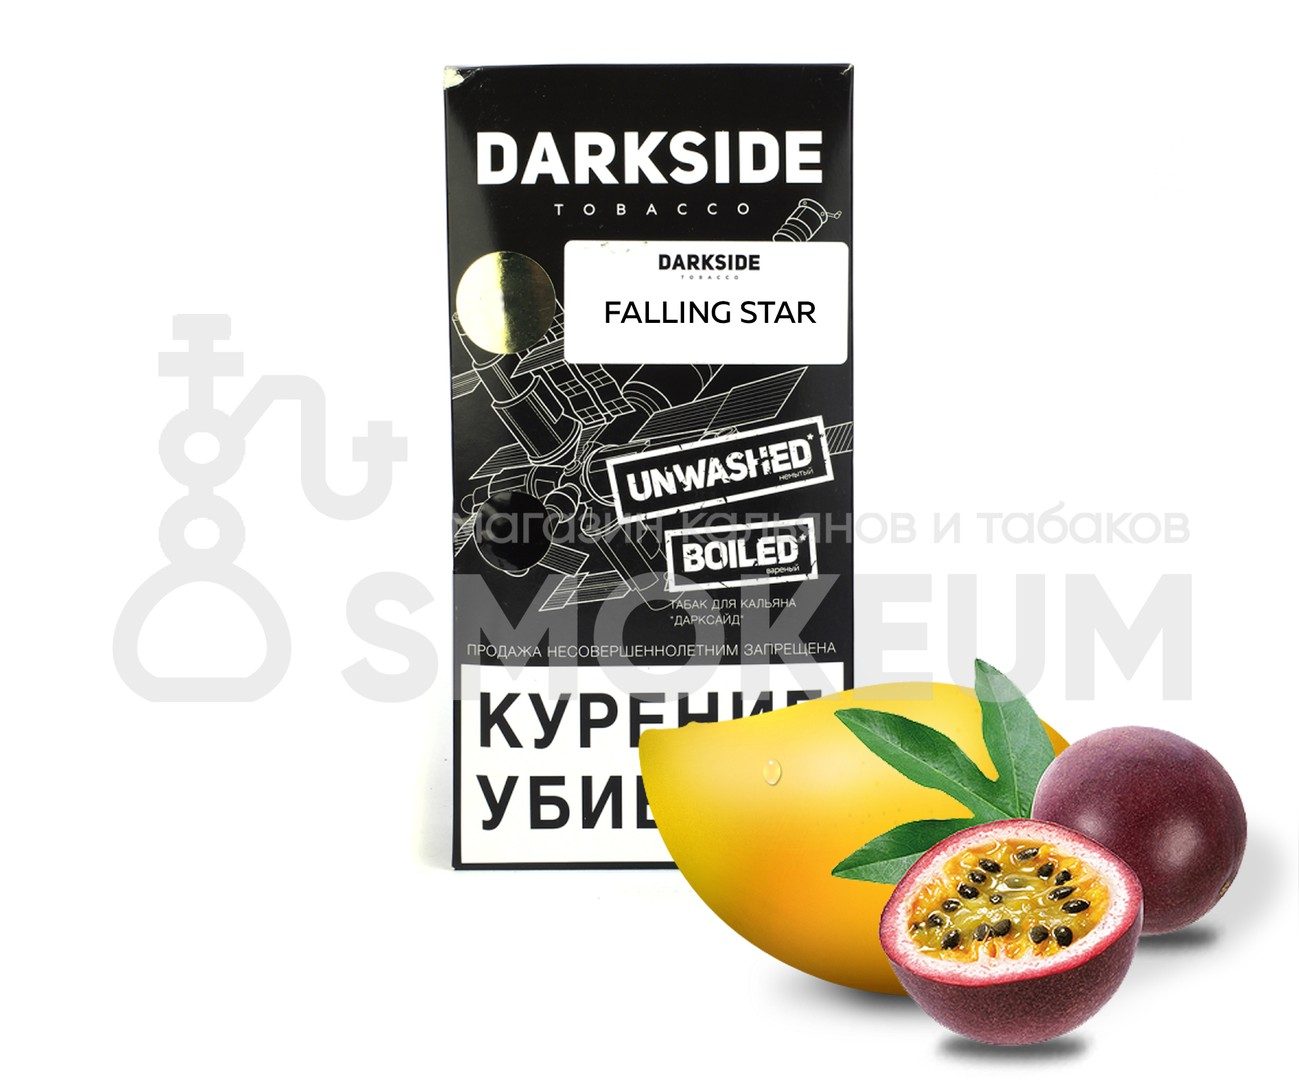 Табак Darkside (Medium) - Falling star (Манго Маракуйя) 100 гр